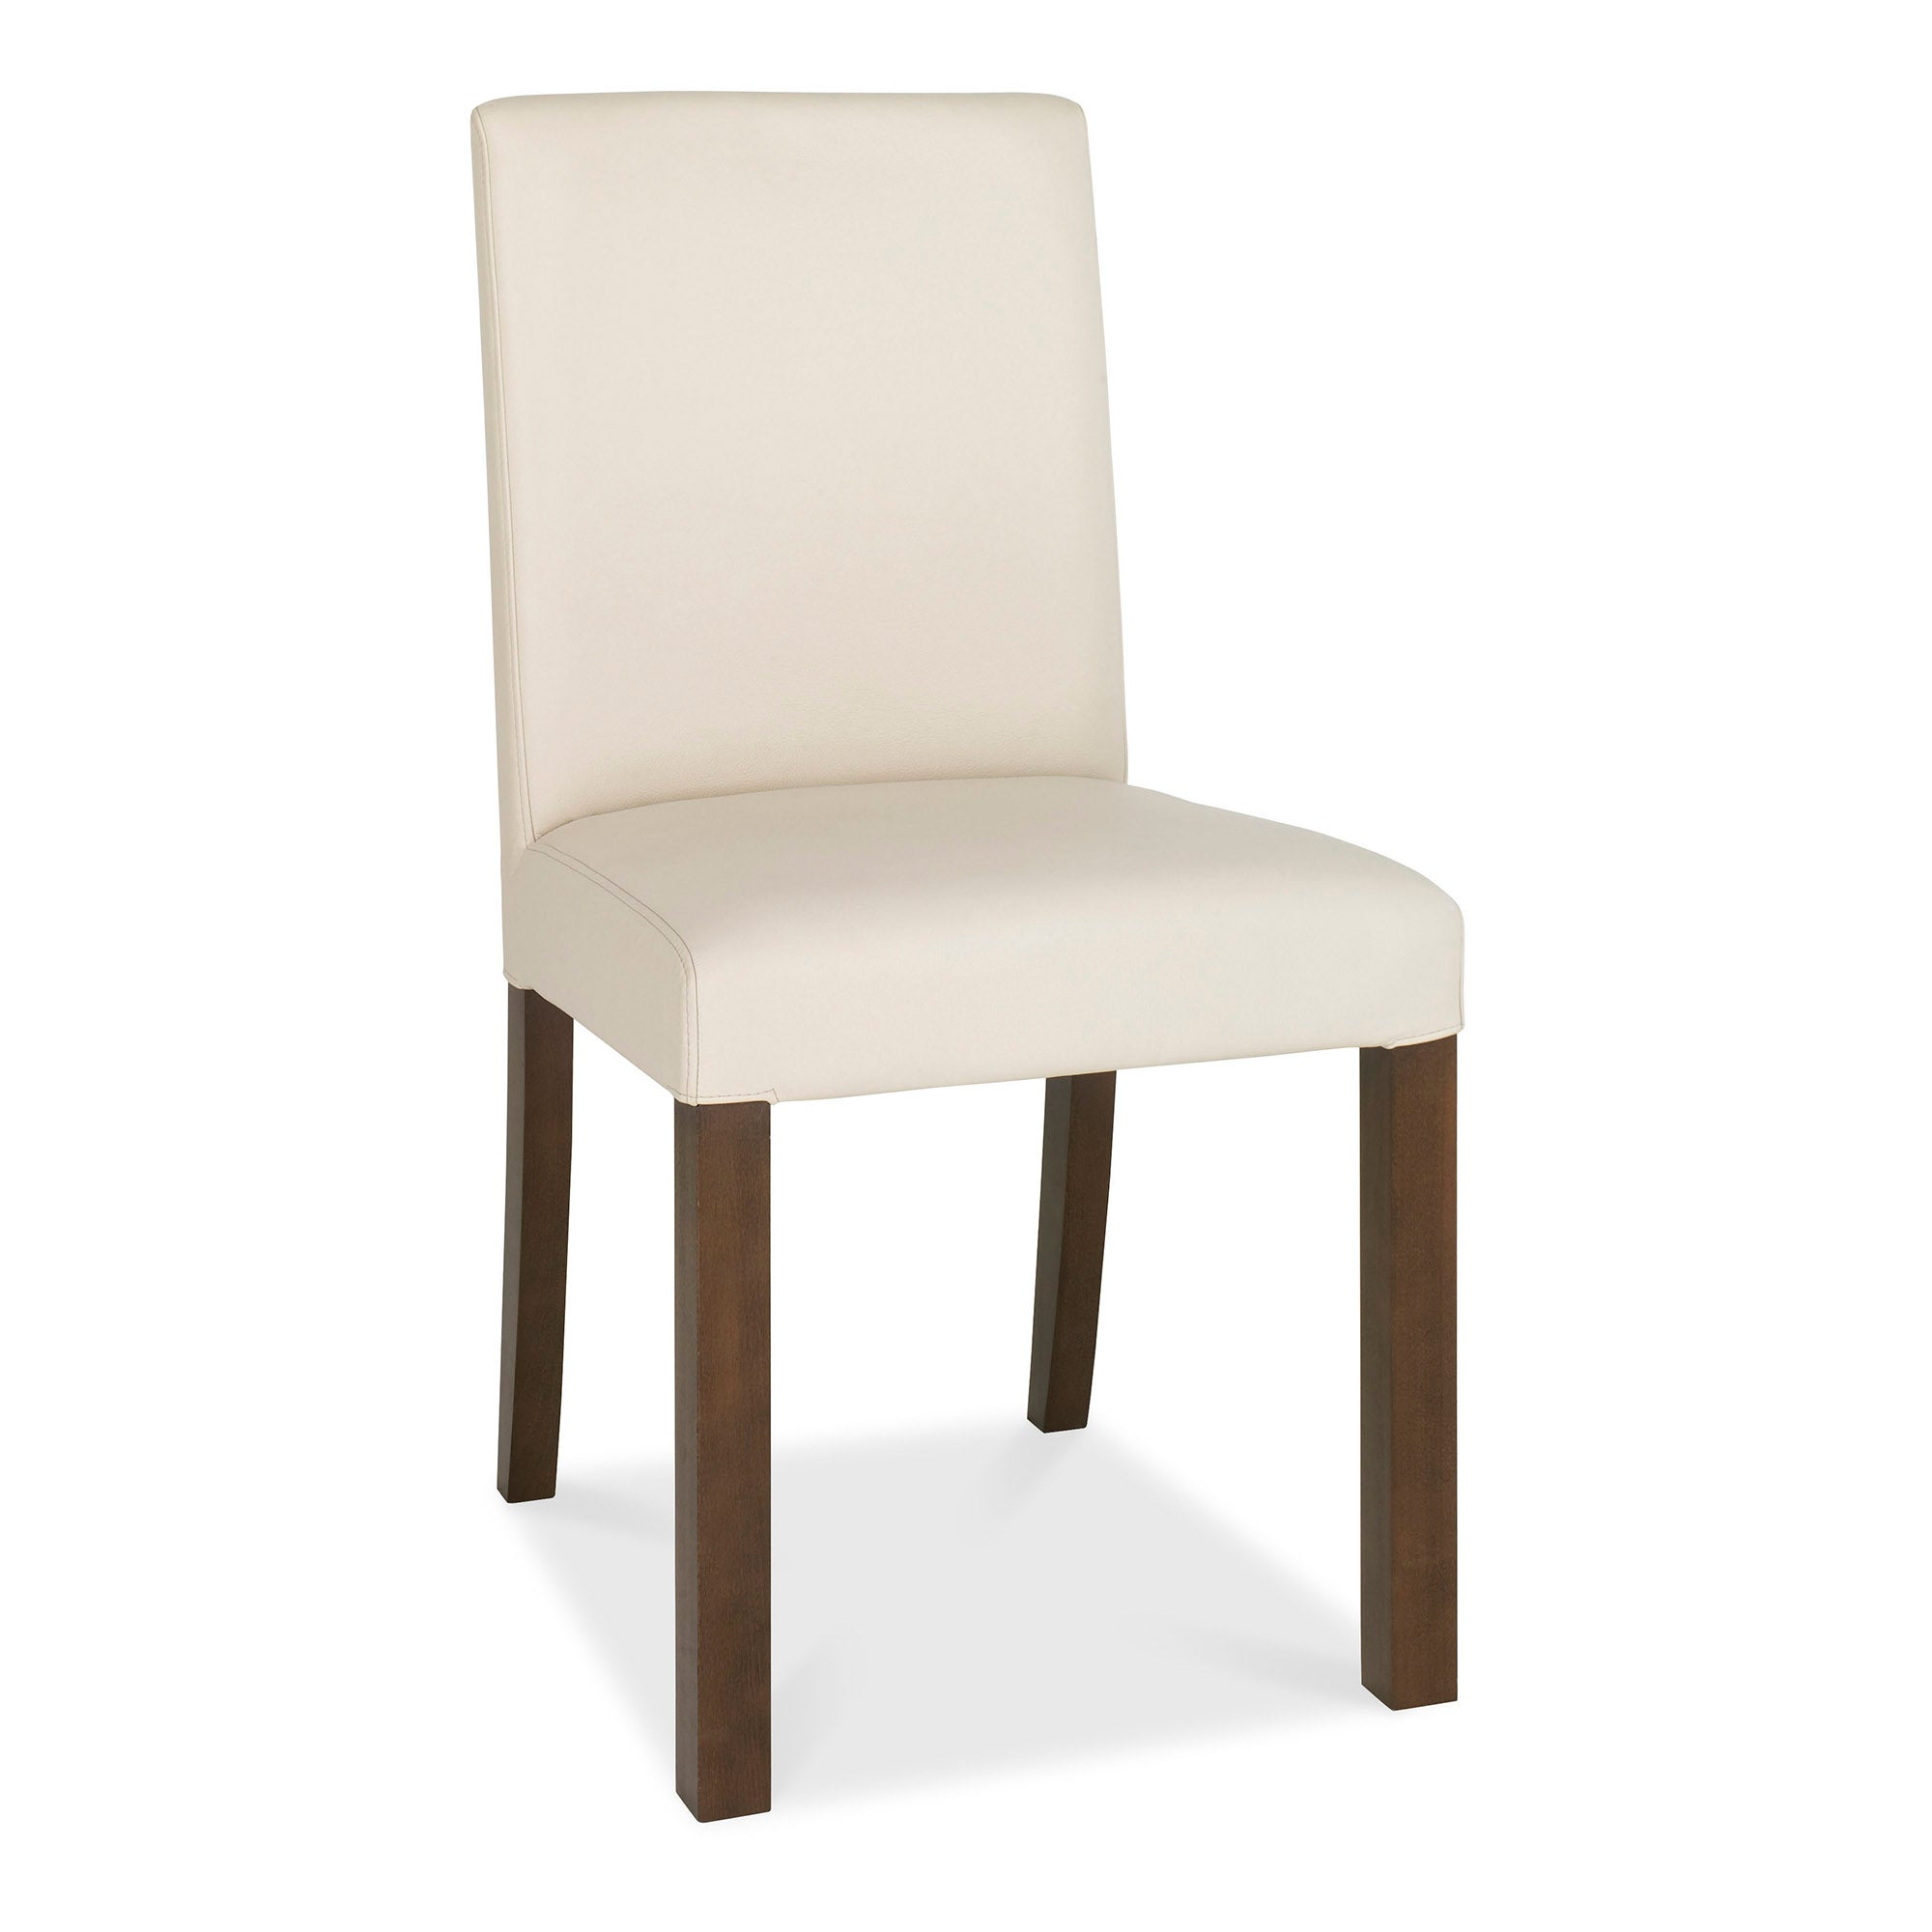 Wade Walnut Pair of Ivory Faux Leather Chairs